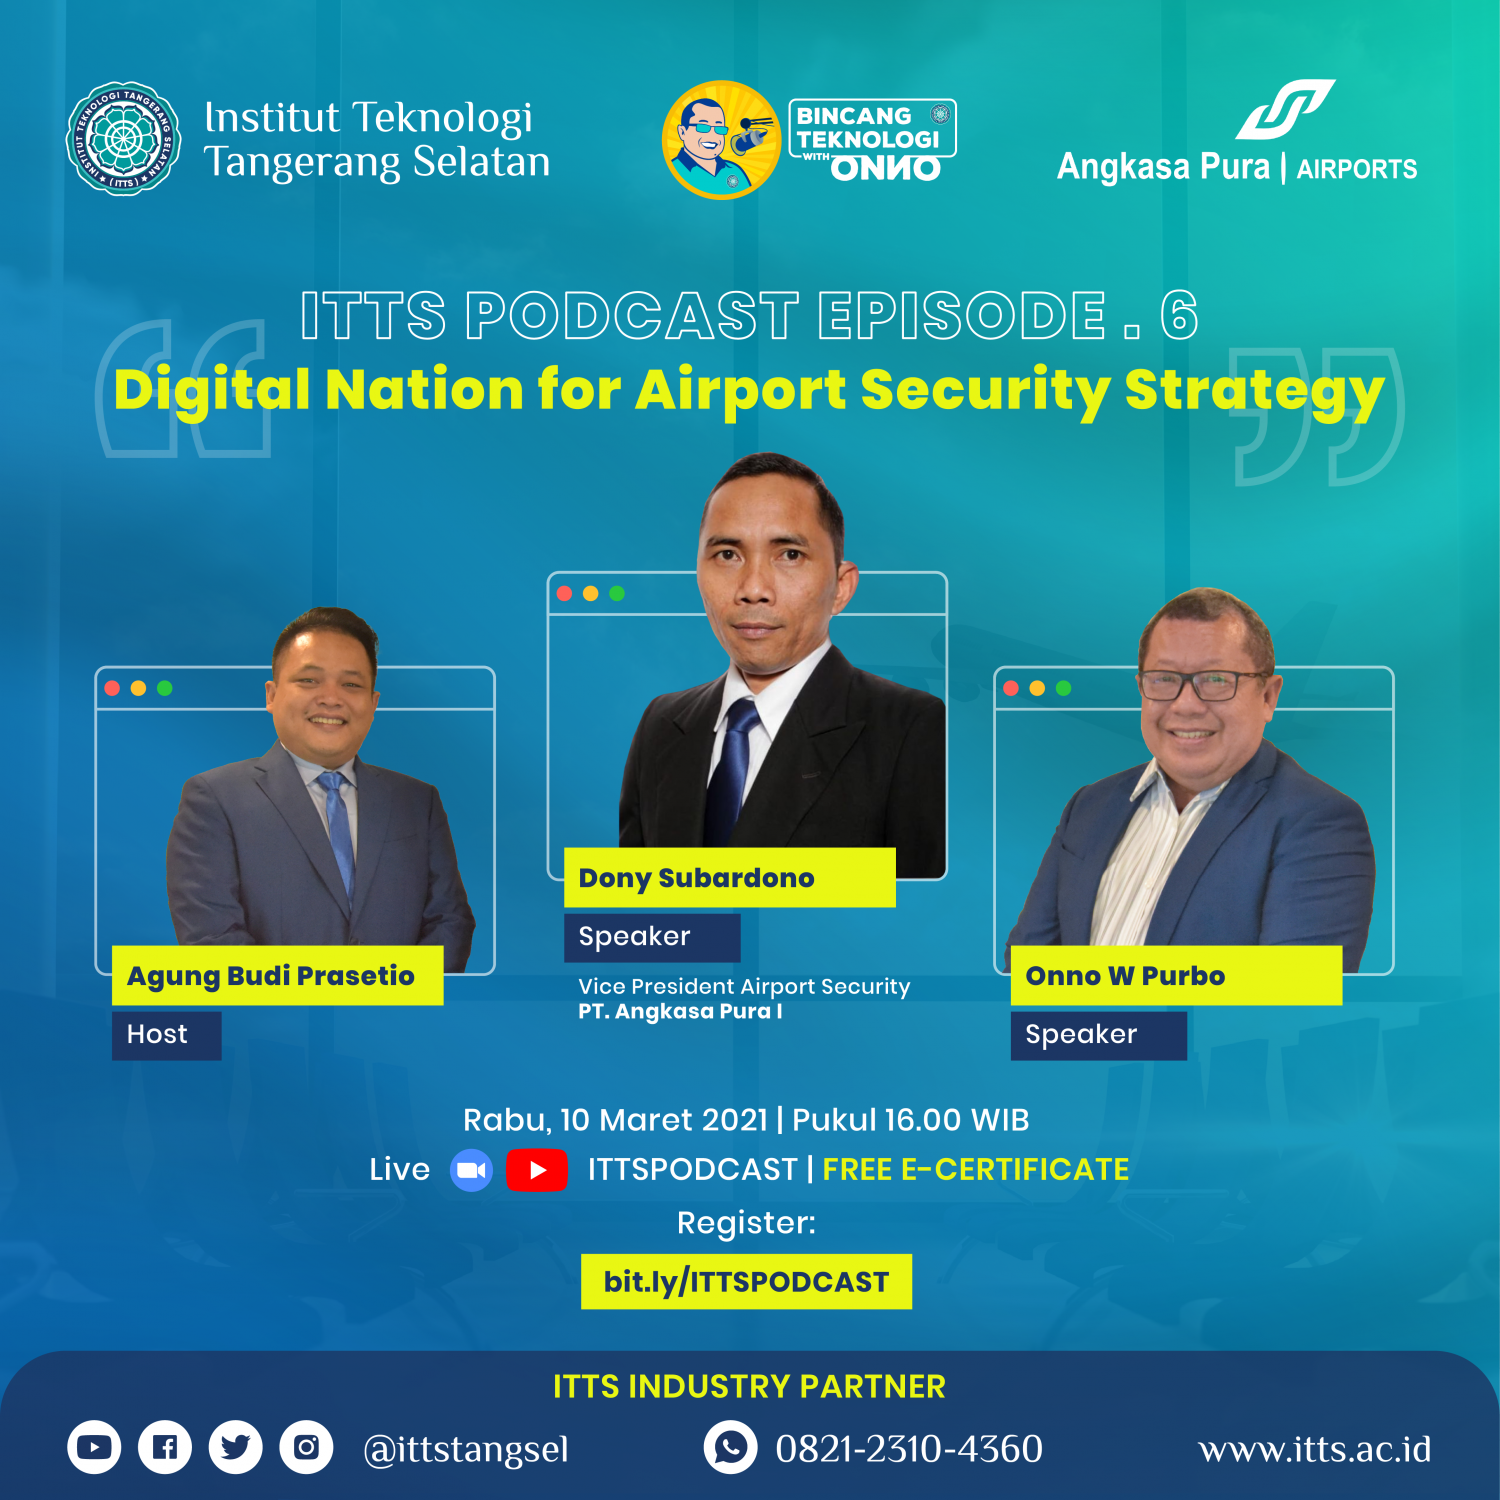 ITTSPODCAST Episode 6 - Digital Nation for Airport Security Strategy